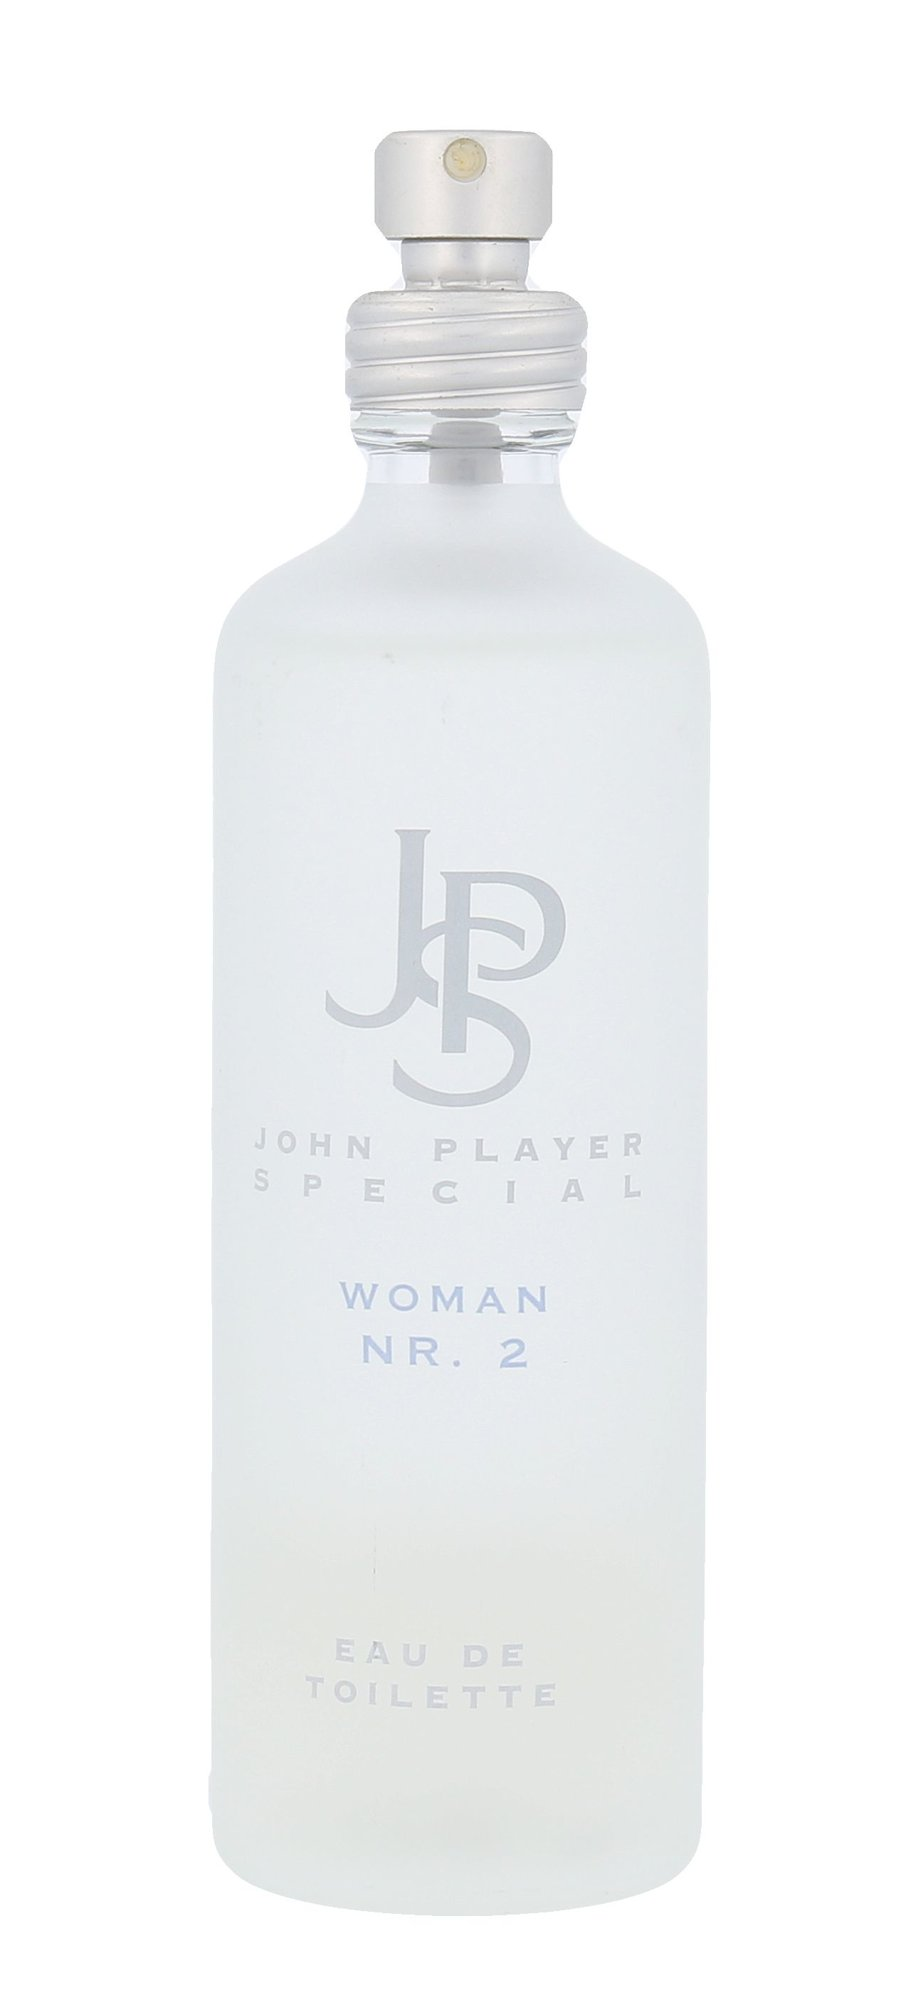 John Player Special Woman NR. 2 EDT 100ml